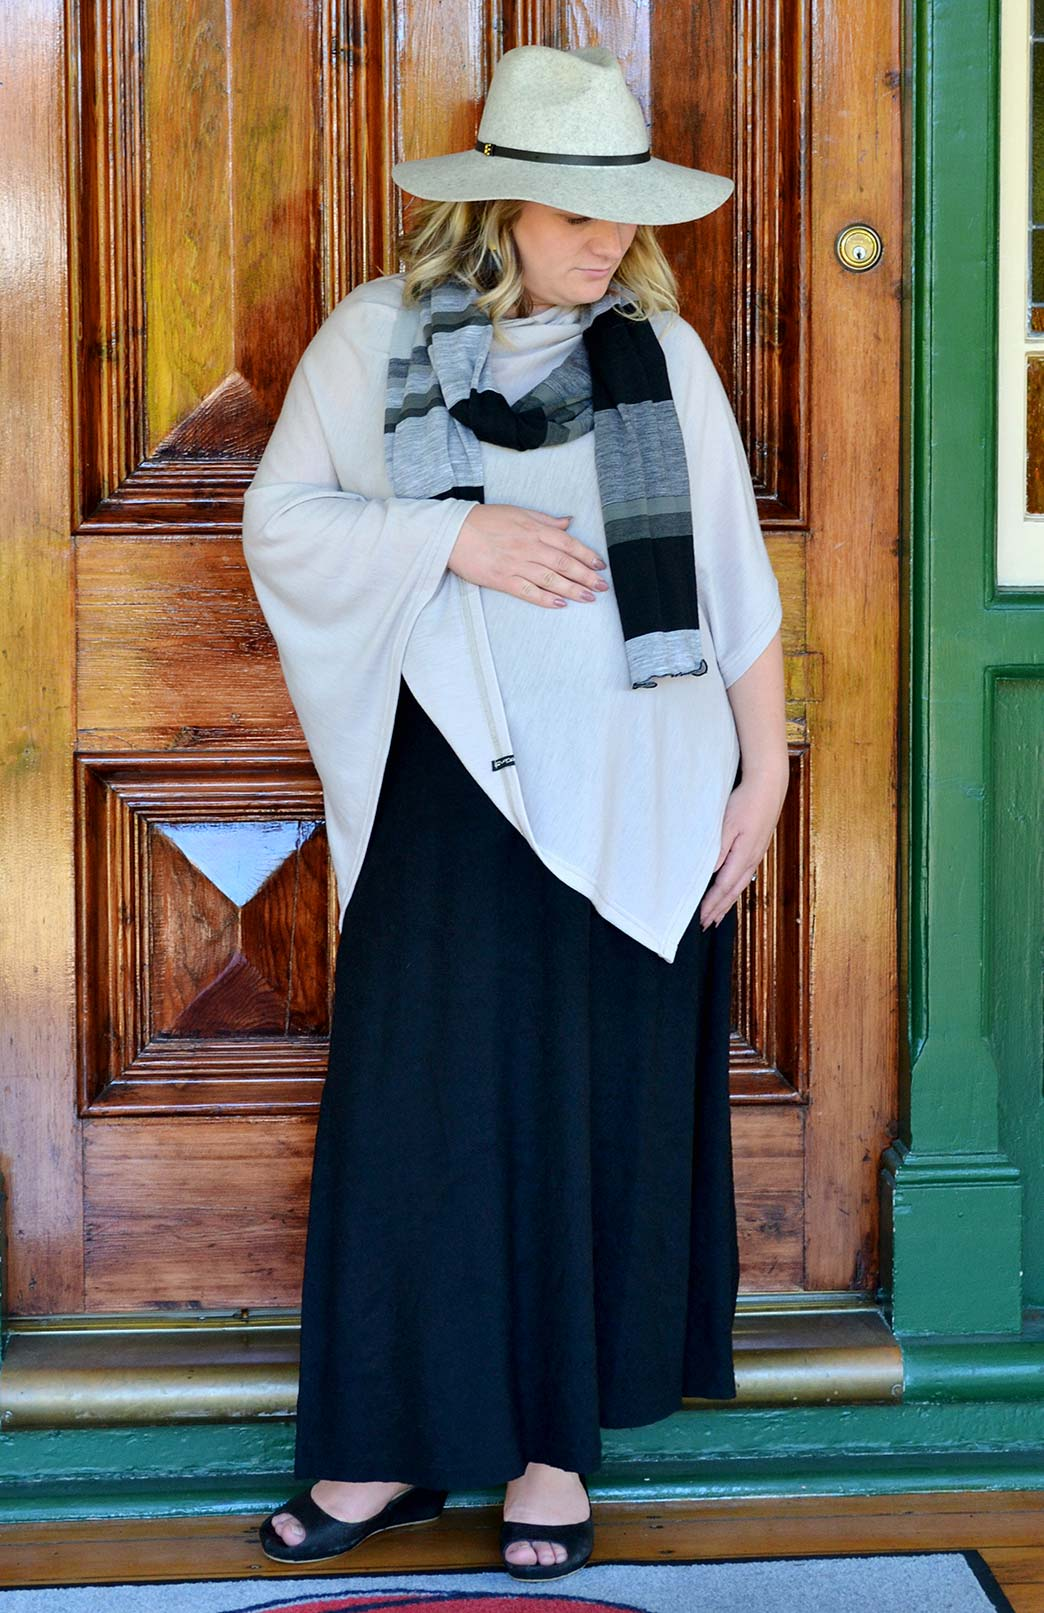 Scarves - Multi Striped - Women's Black and Grey Striped Wide Wool Scarf - Smitten Merino Tasmania Australia